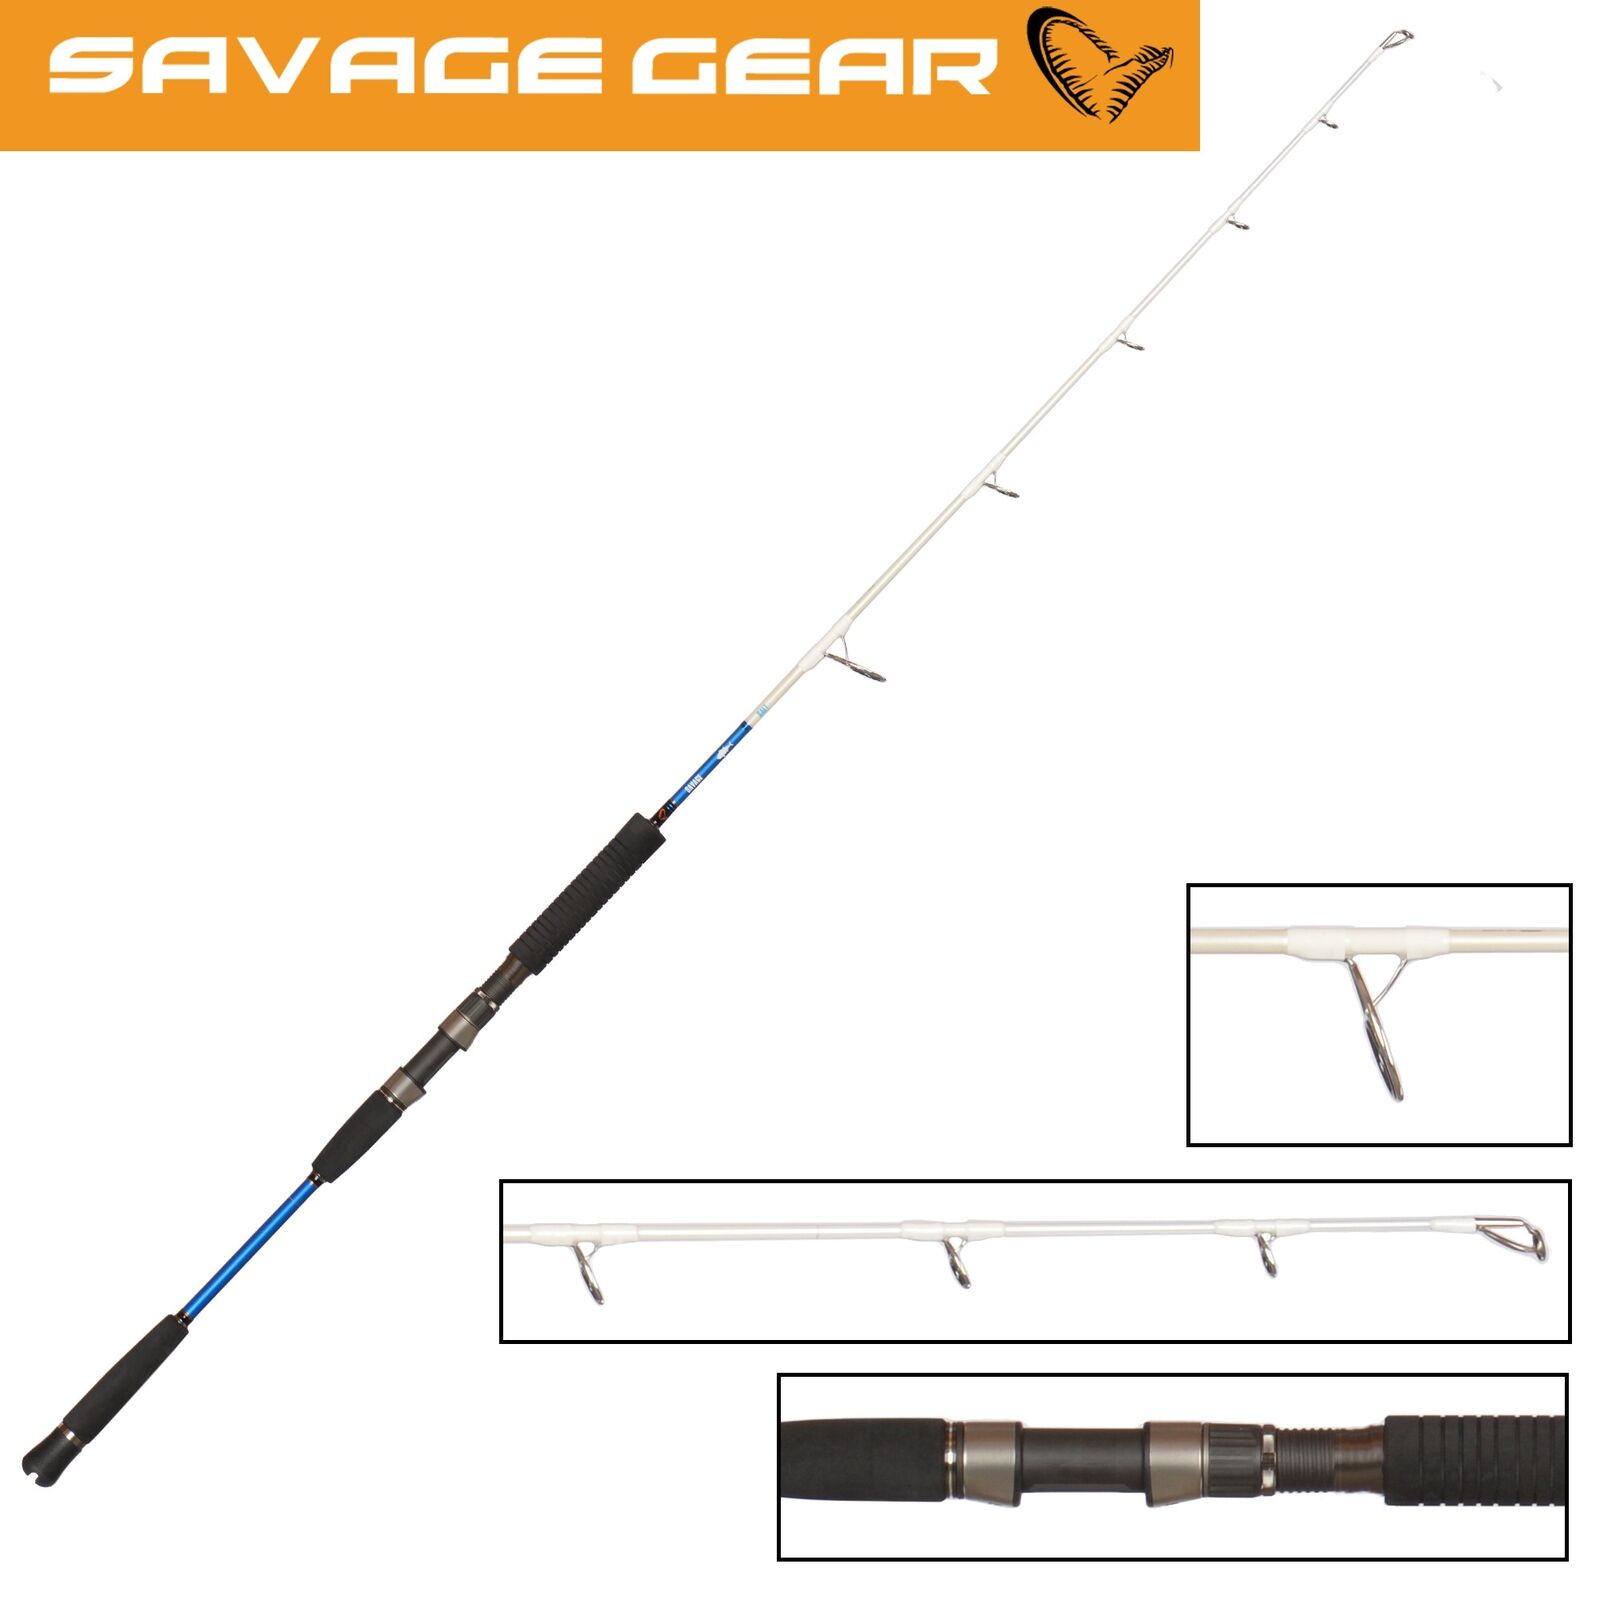 Savage Gear Salt 1DFR Slow Jigging - ML 183cm 80-150g - Jigging Meeresrute, Pilkrute 8373ec